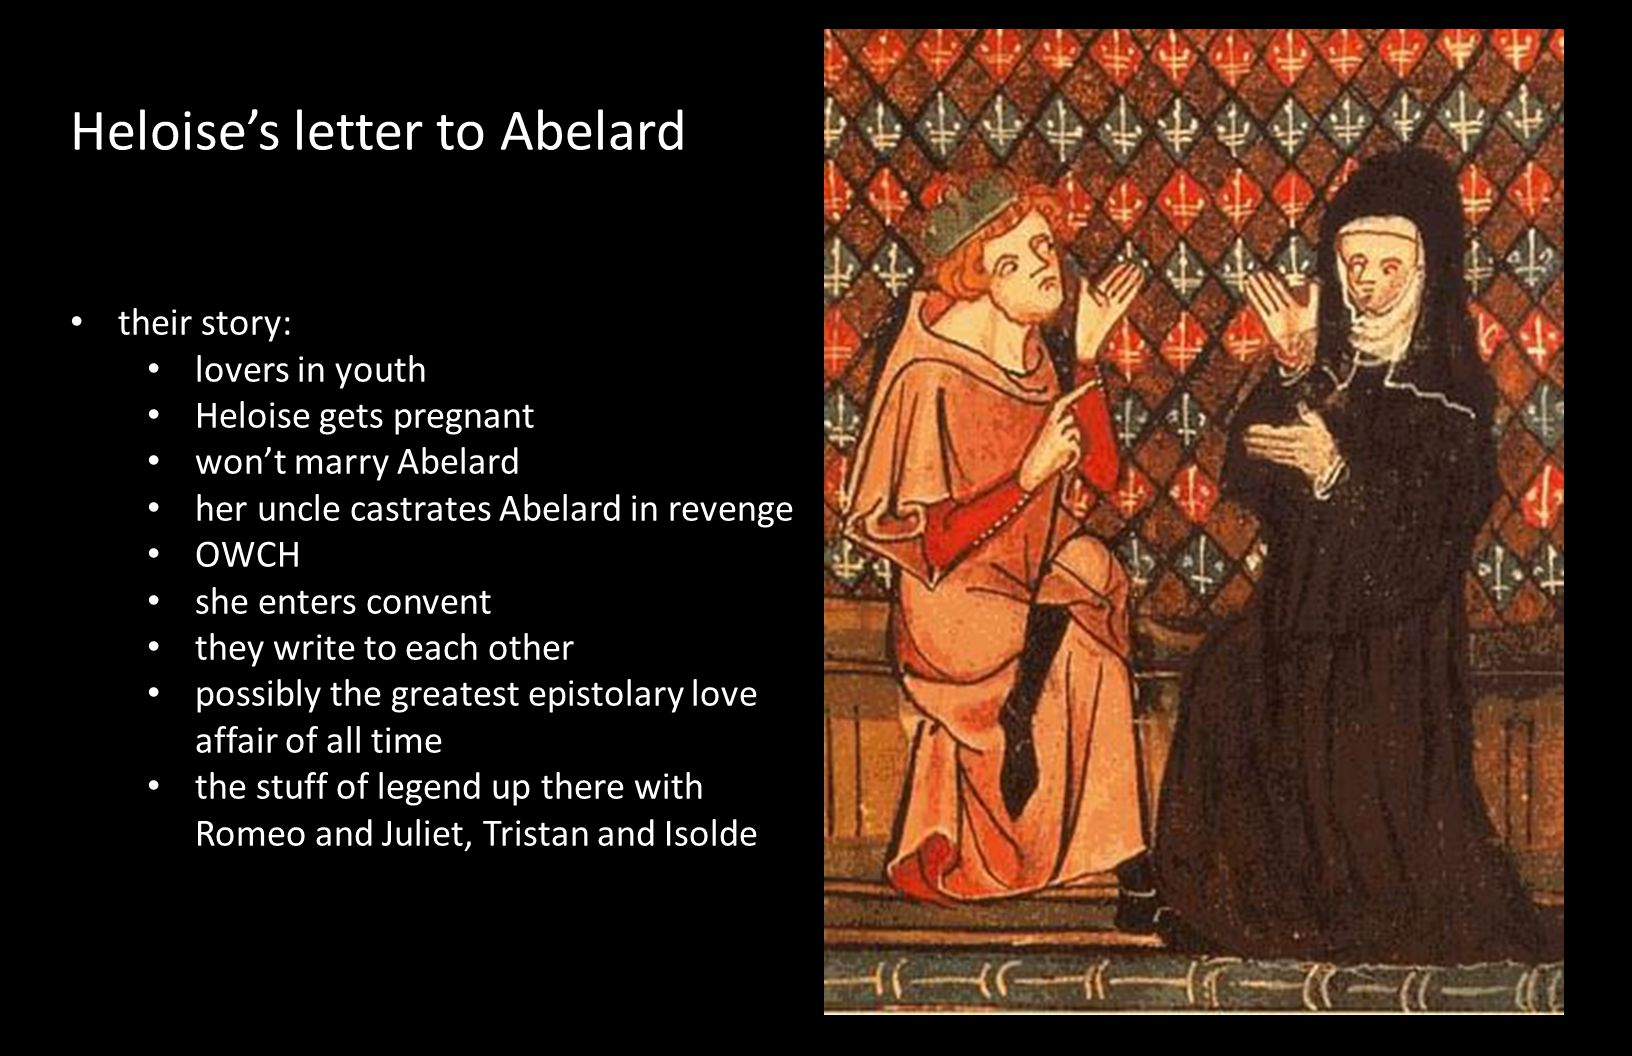 Heloise's letter to Abelard their story: lovers in youth Heloise gets pregnant won't marry Abelard her uncle castrates Abelard in revenge OWCH she ent